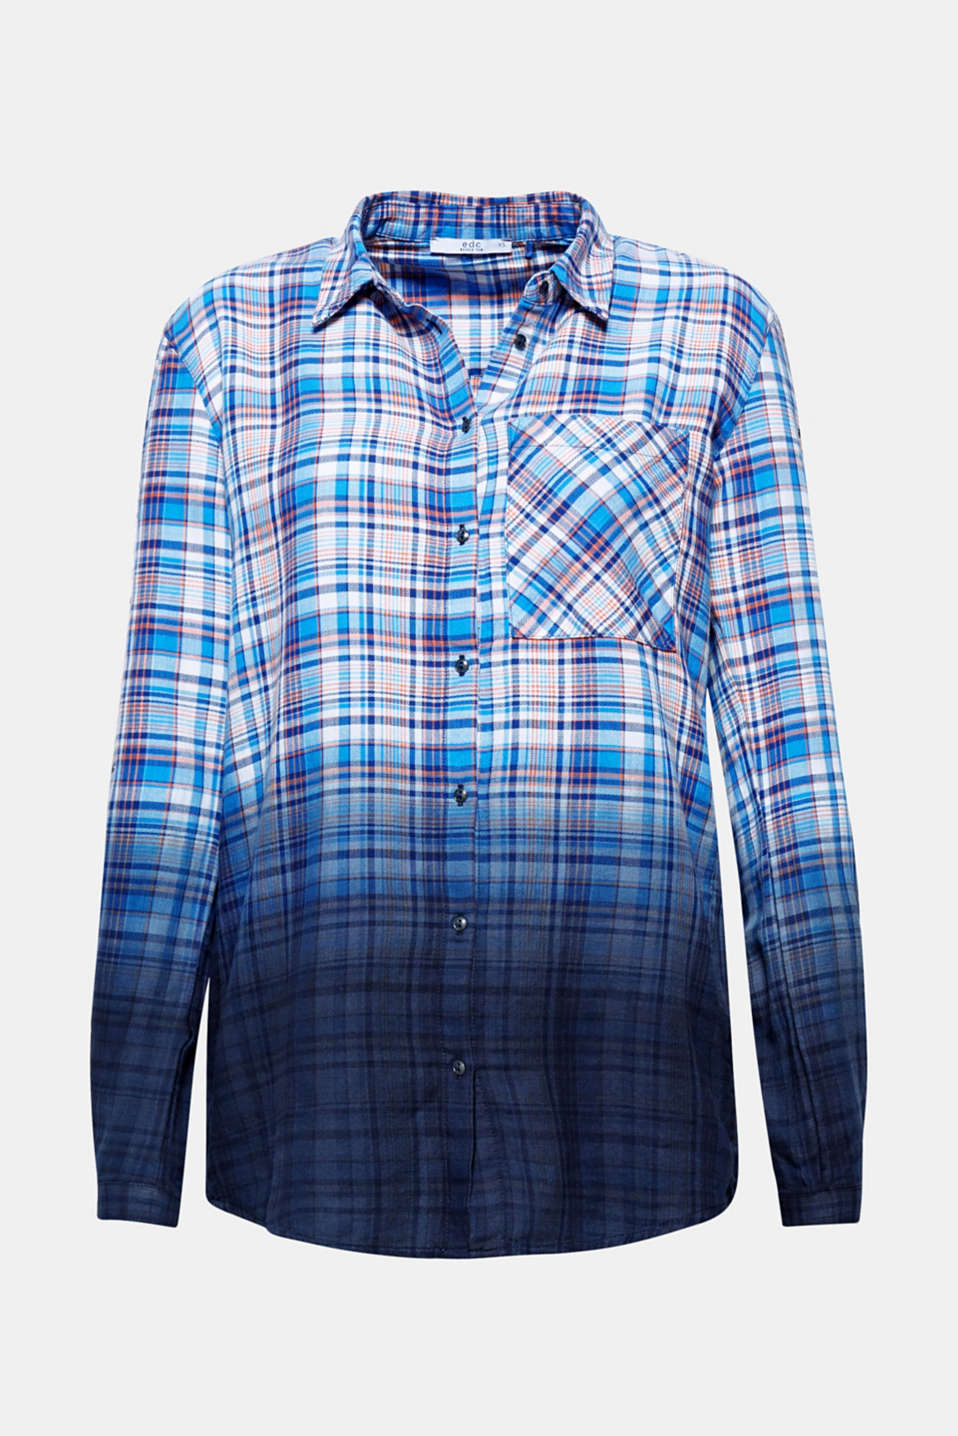 Checks with a twist! The trendy colour gradation and stud details give this cotton shirt its cool summer style.